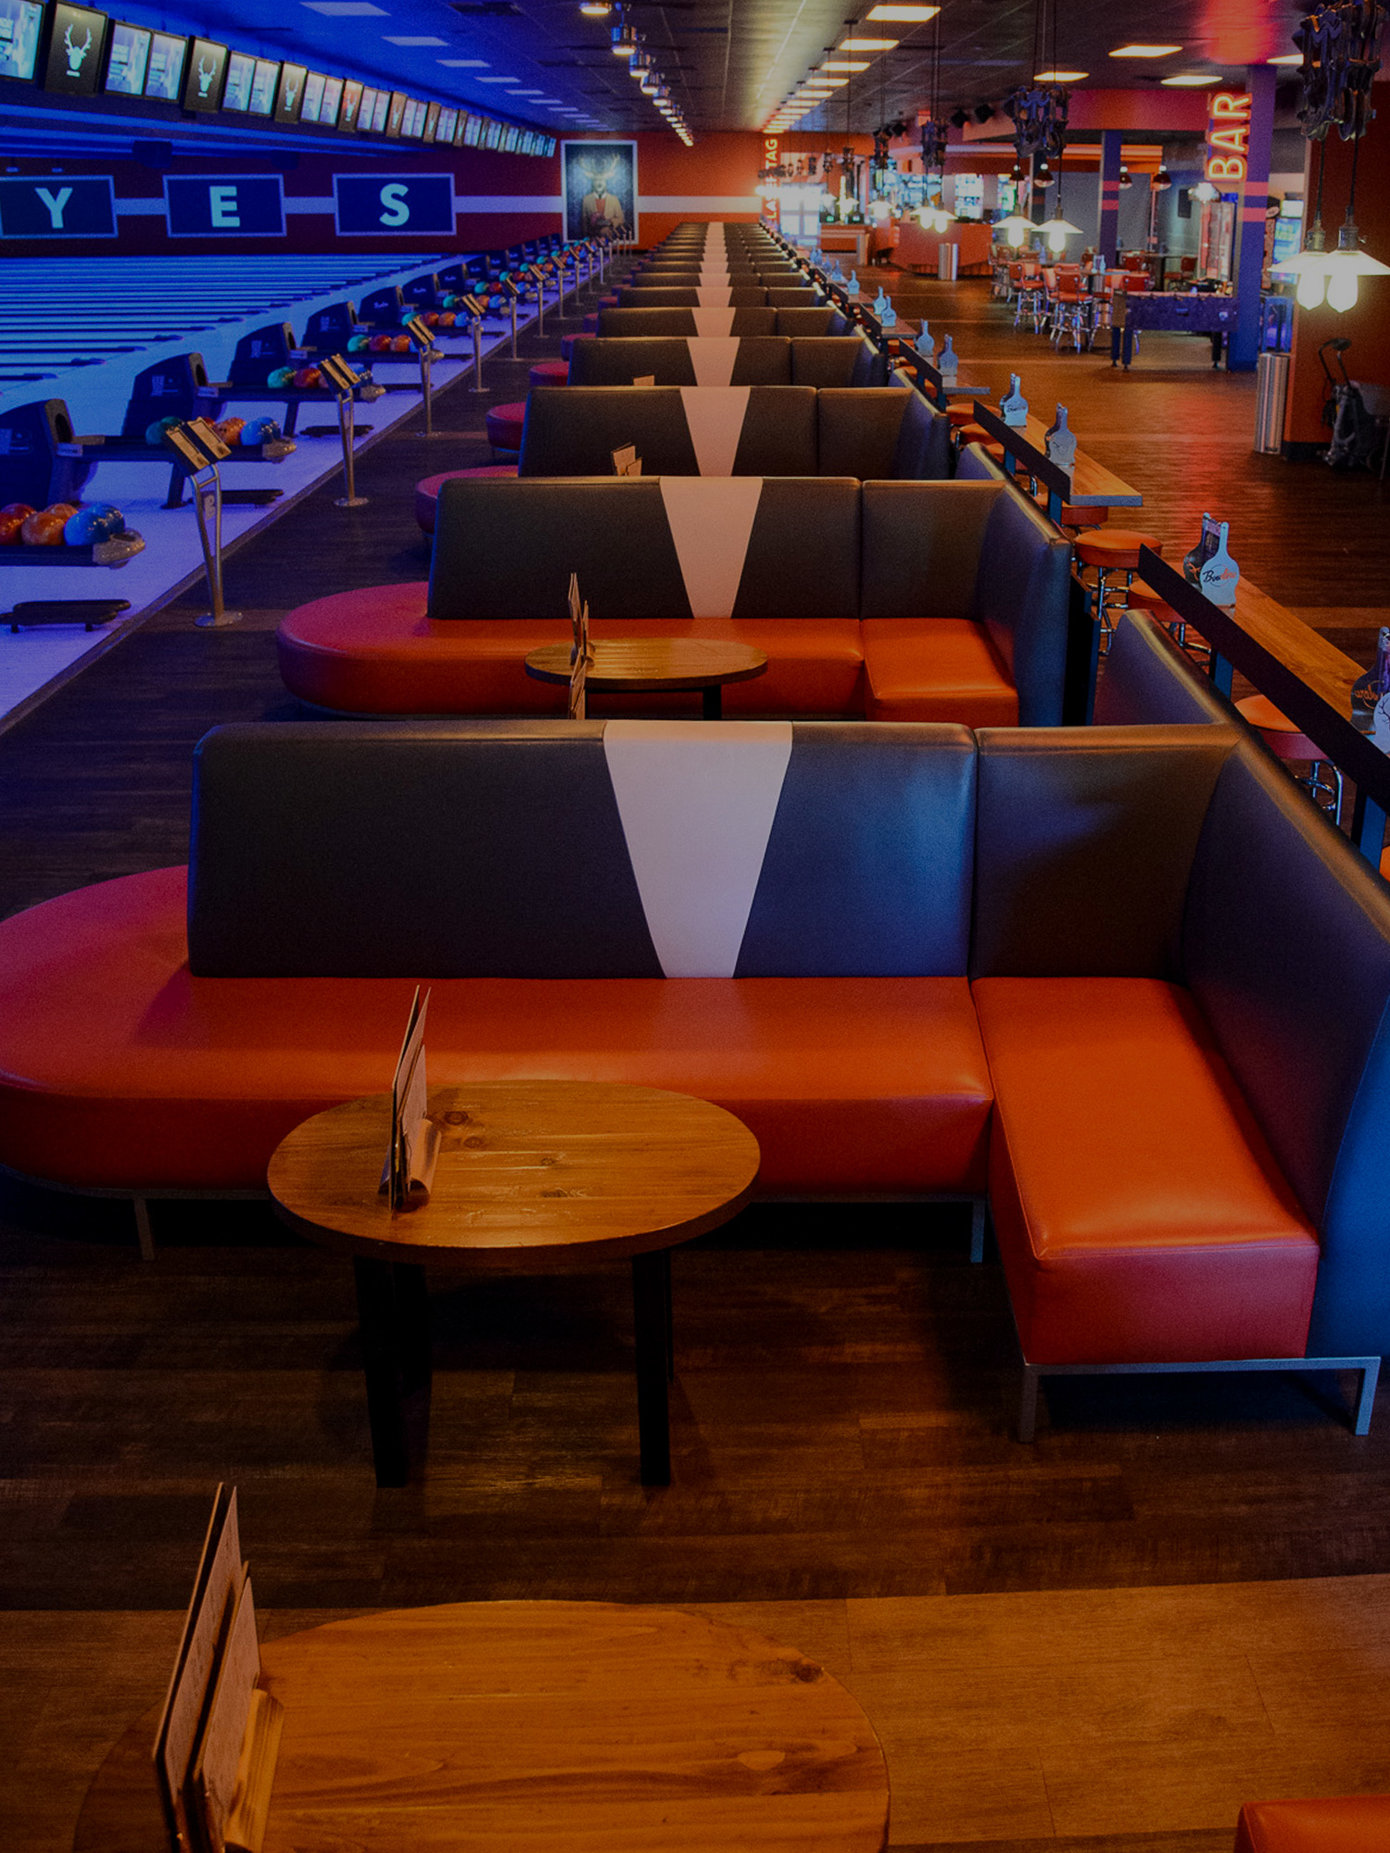 Landside lounge seating areas